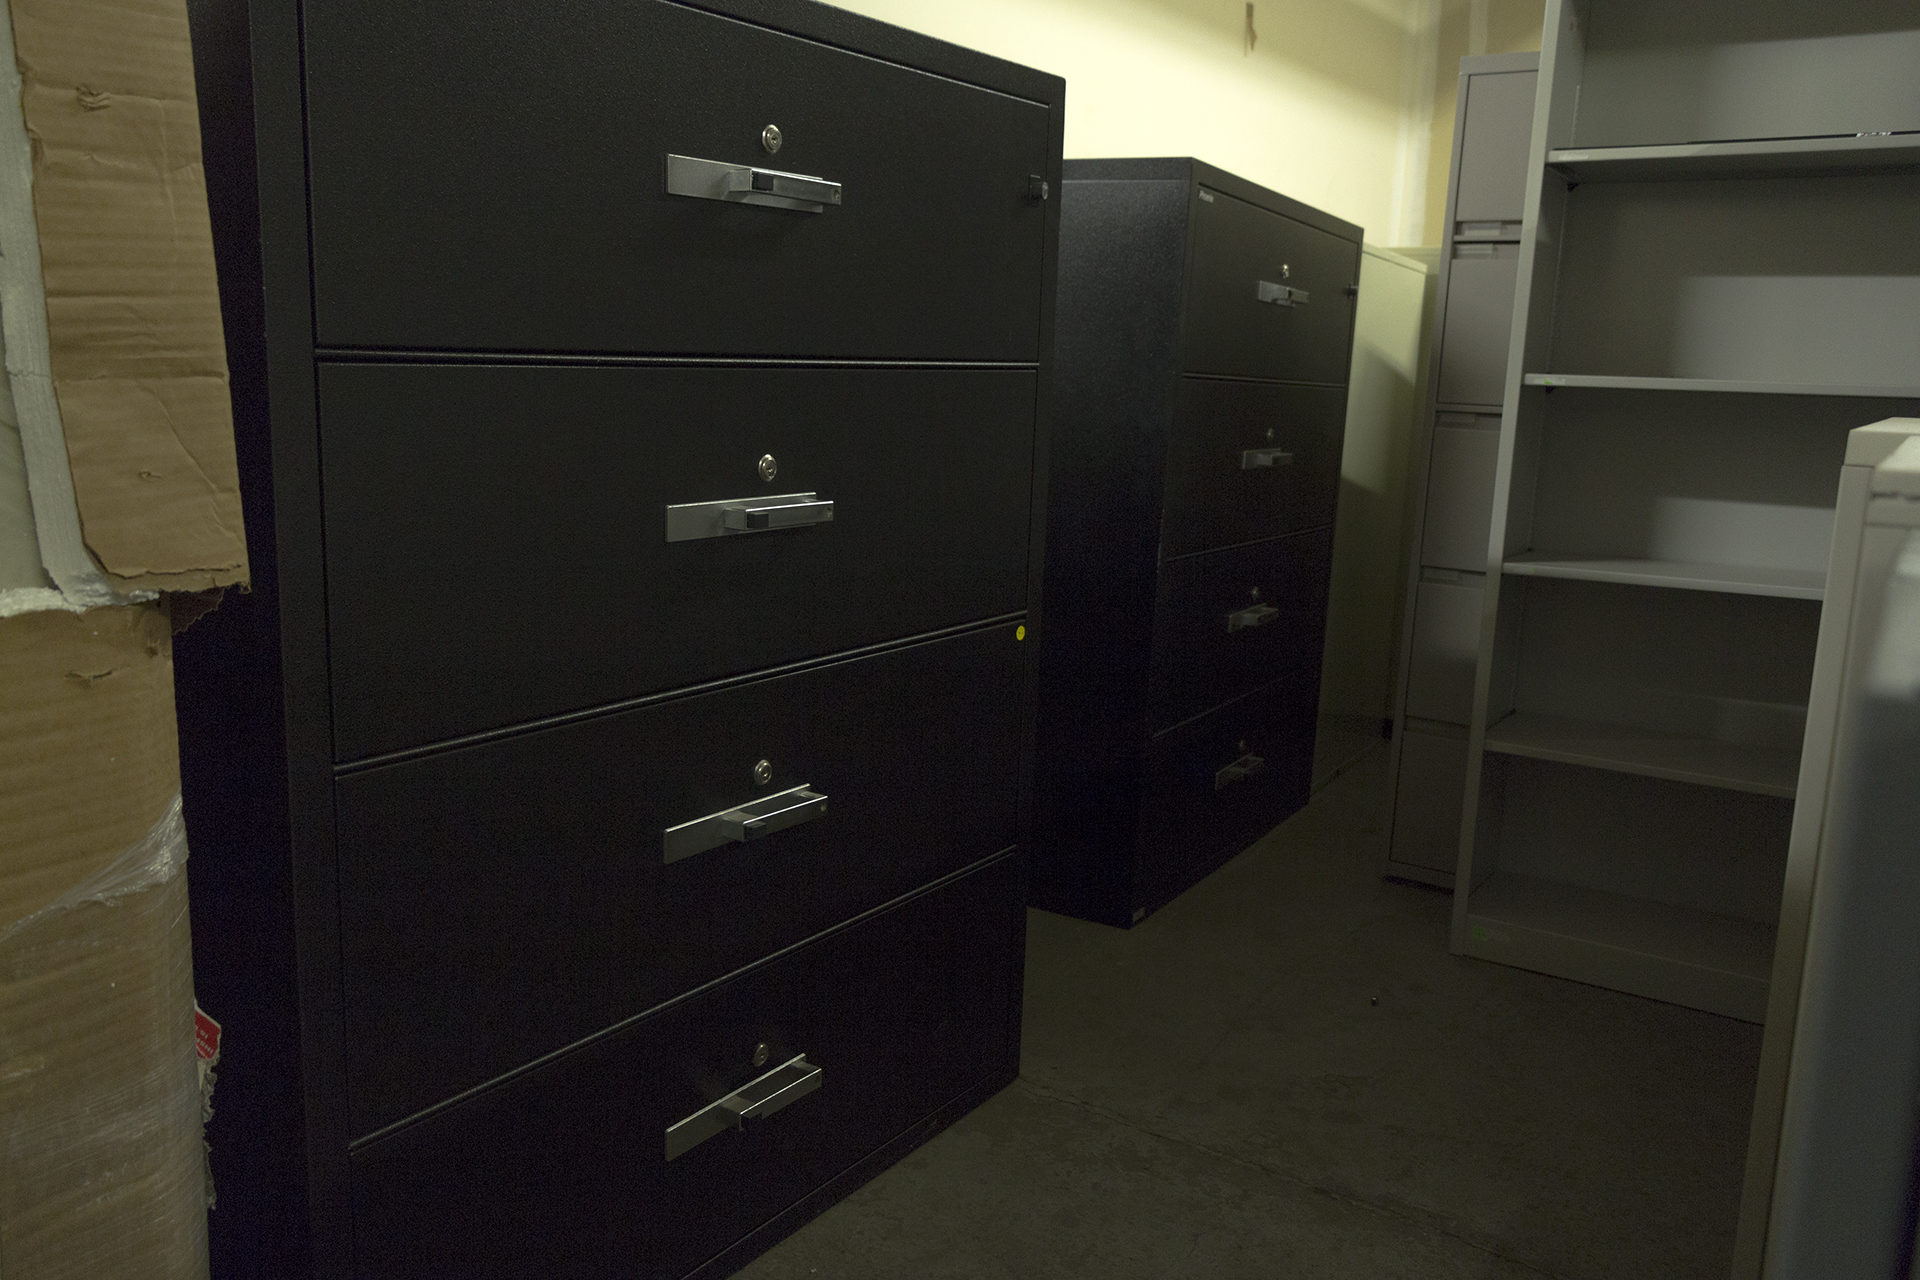 Phoenix Lat4w44 Black Fireproof 4 Drawer Lateral File Cabinets